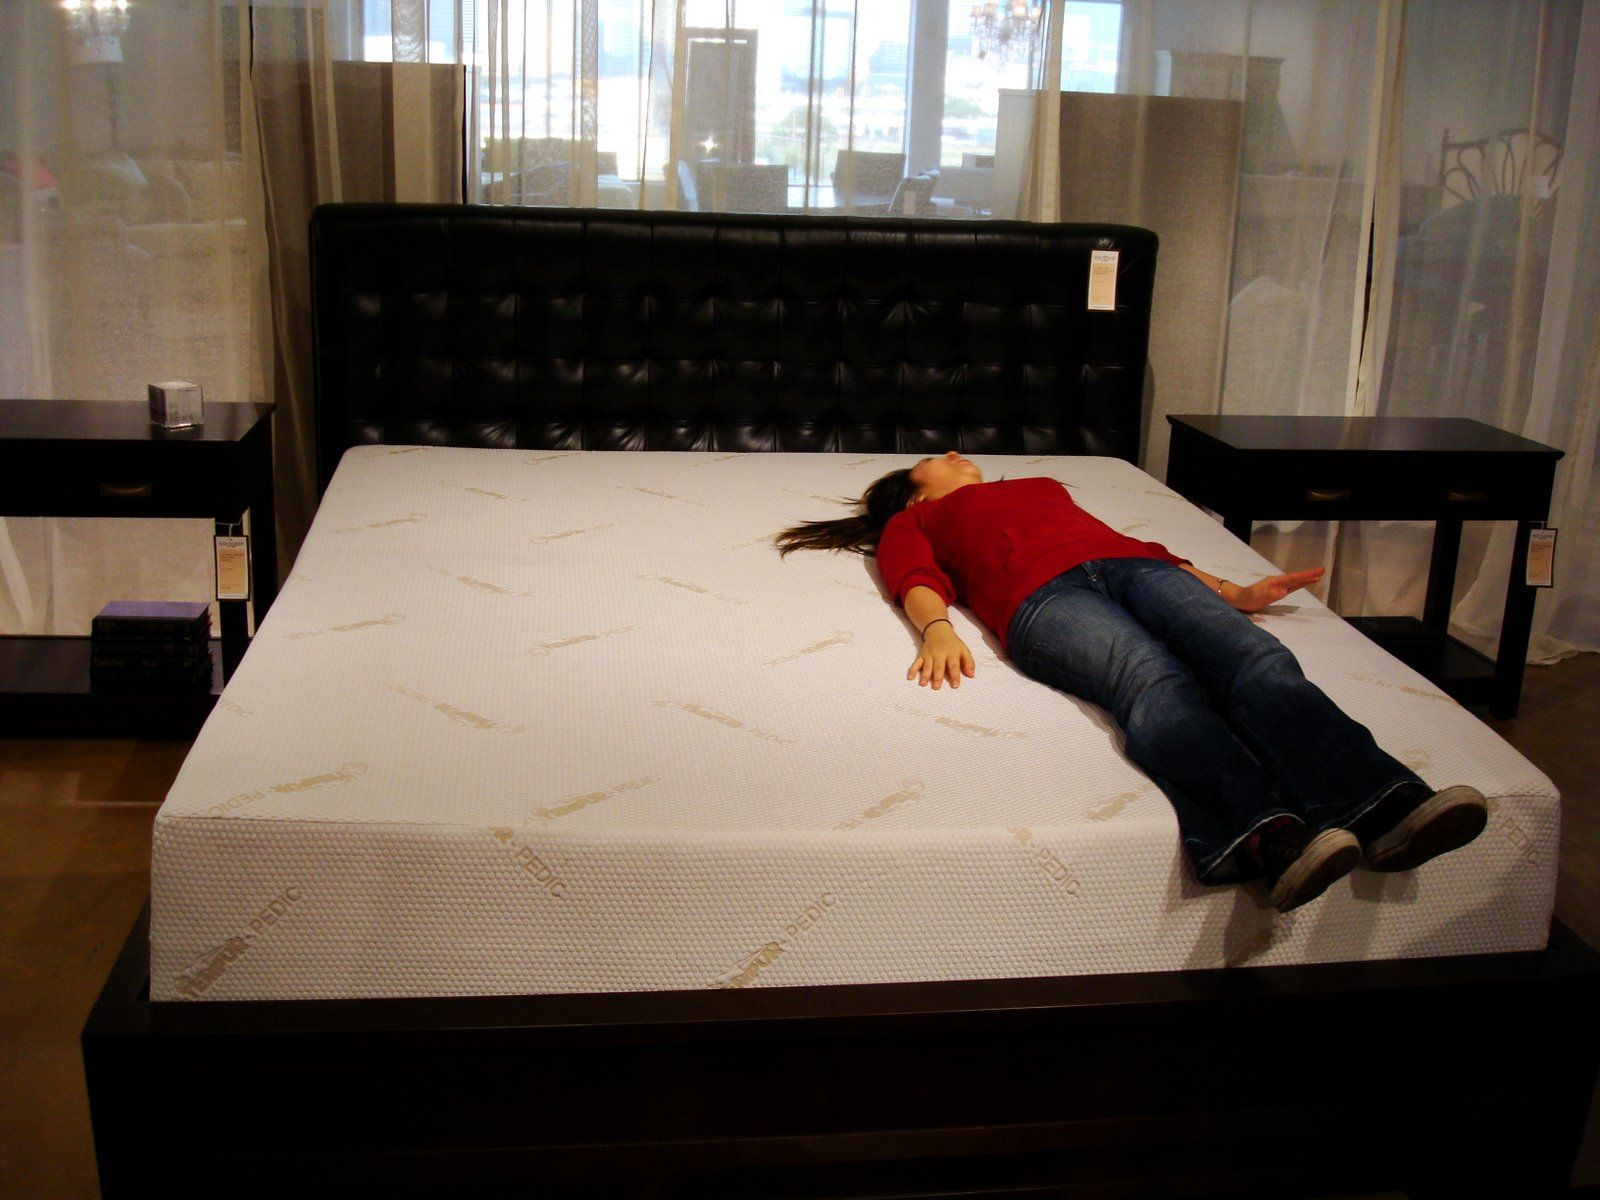 4 Words  King Sized Tempurpedic Mattress   My Kind of Heaven     4 Words  King Sized Tempurpedic Mattress